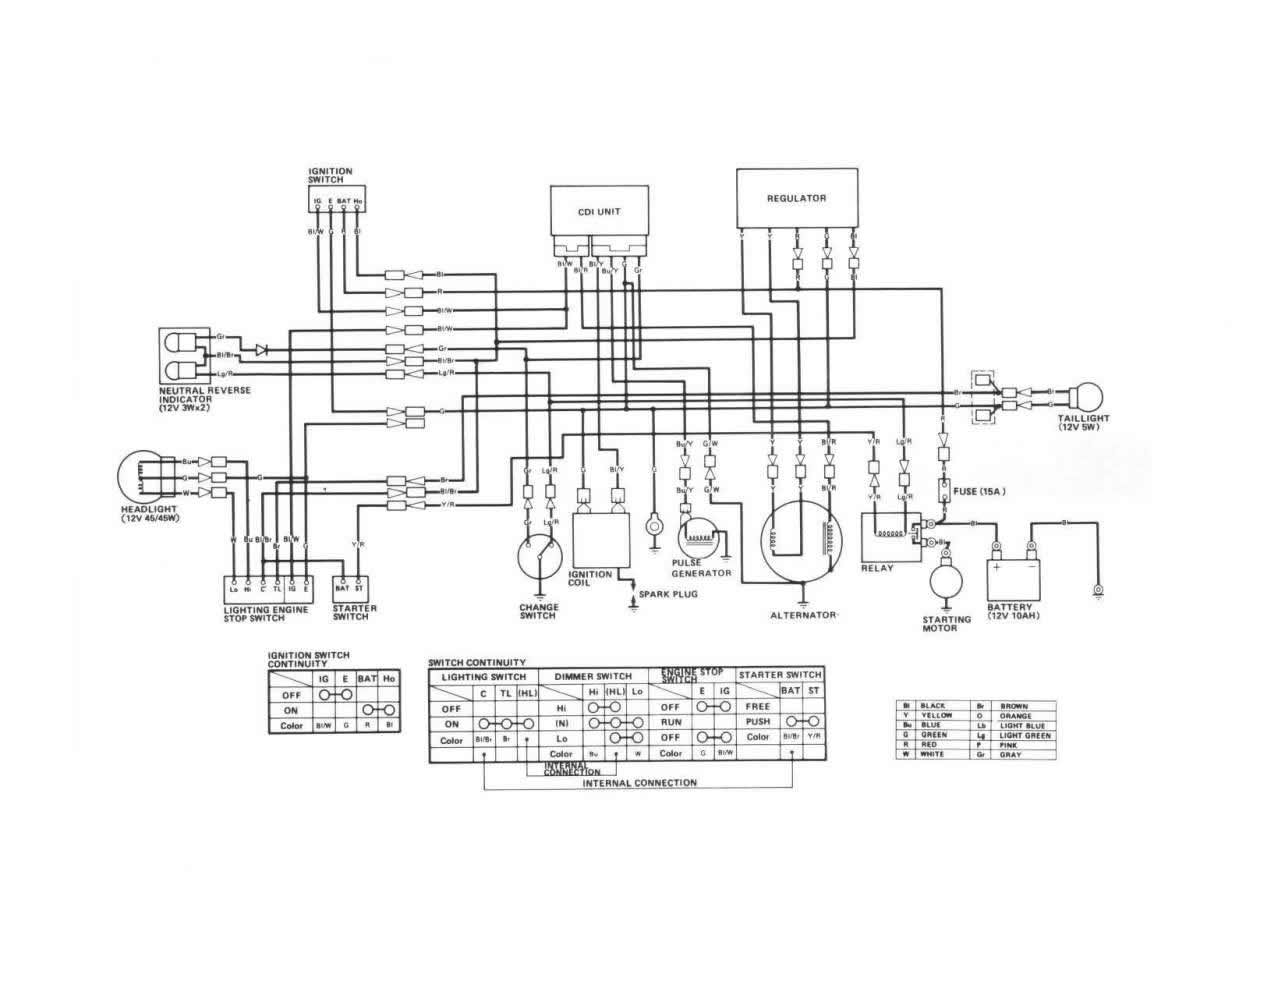 Honda Headlight Dimmer Wiring Harness - Wiring Diagrams Sourceaisdro.